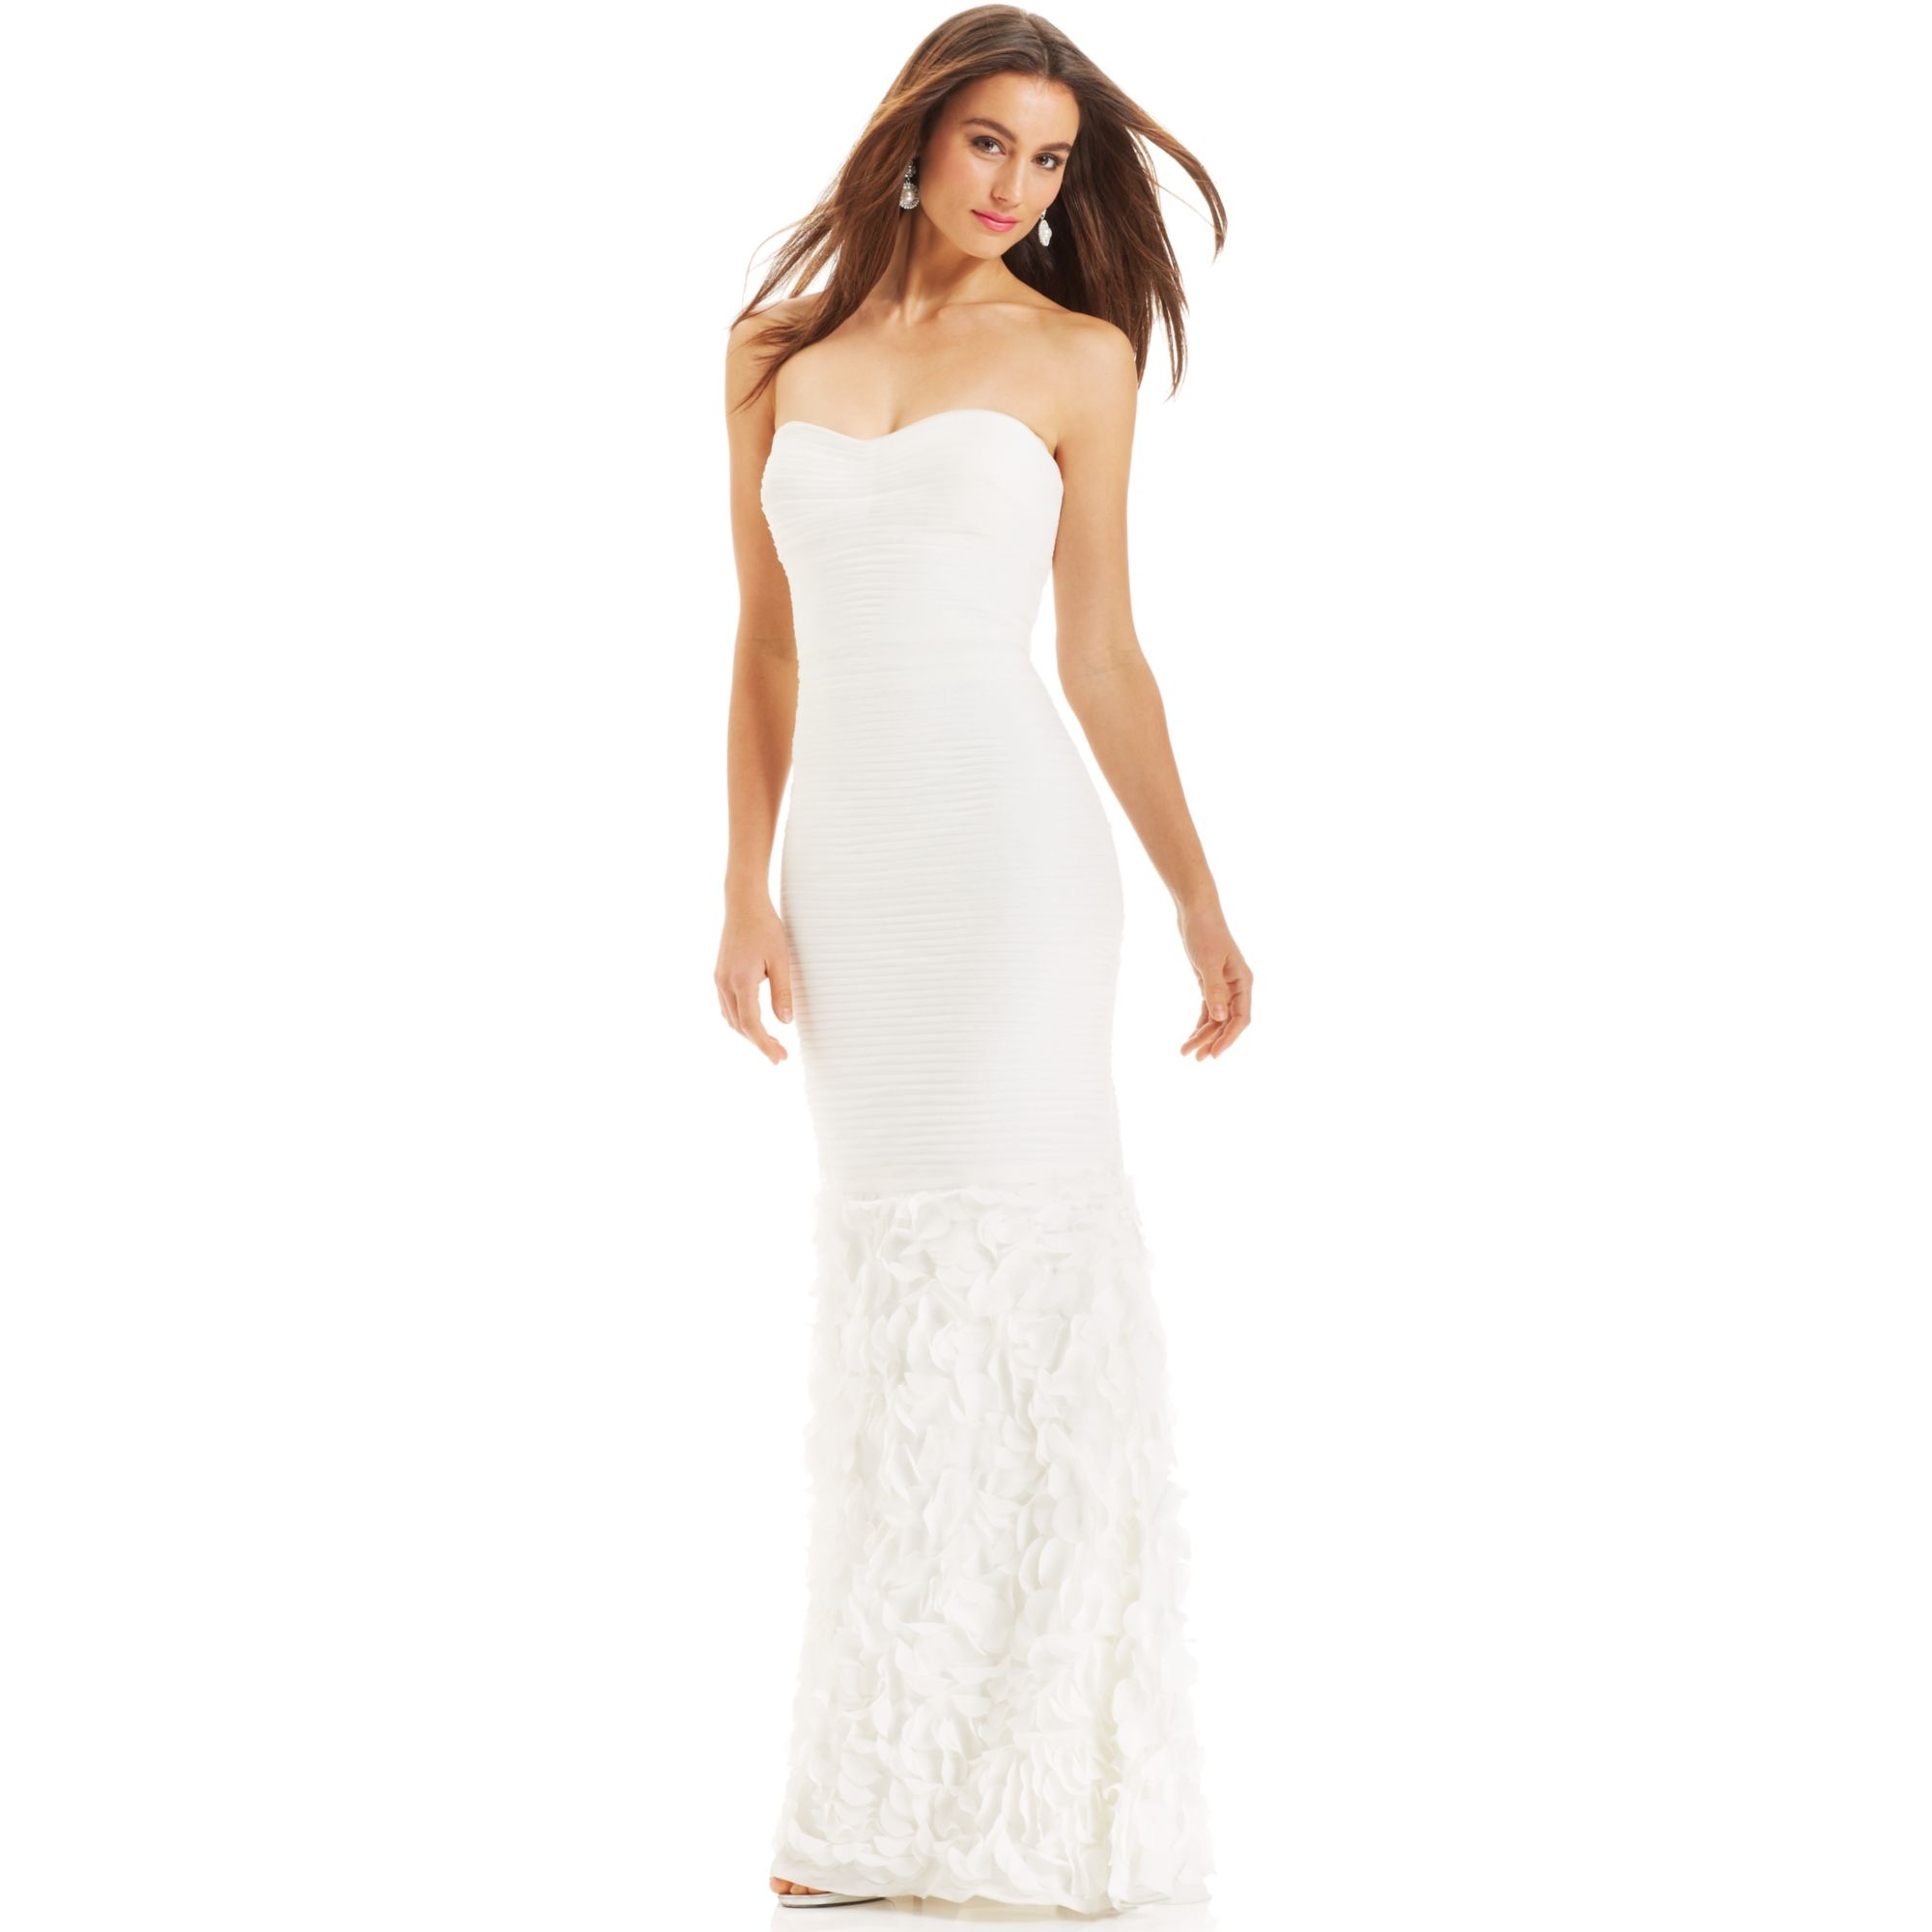 Js collections Strapless Ruched Mermaidhem Gown in White | Lyst